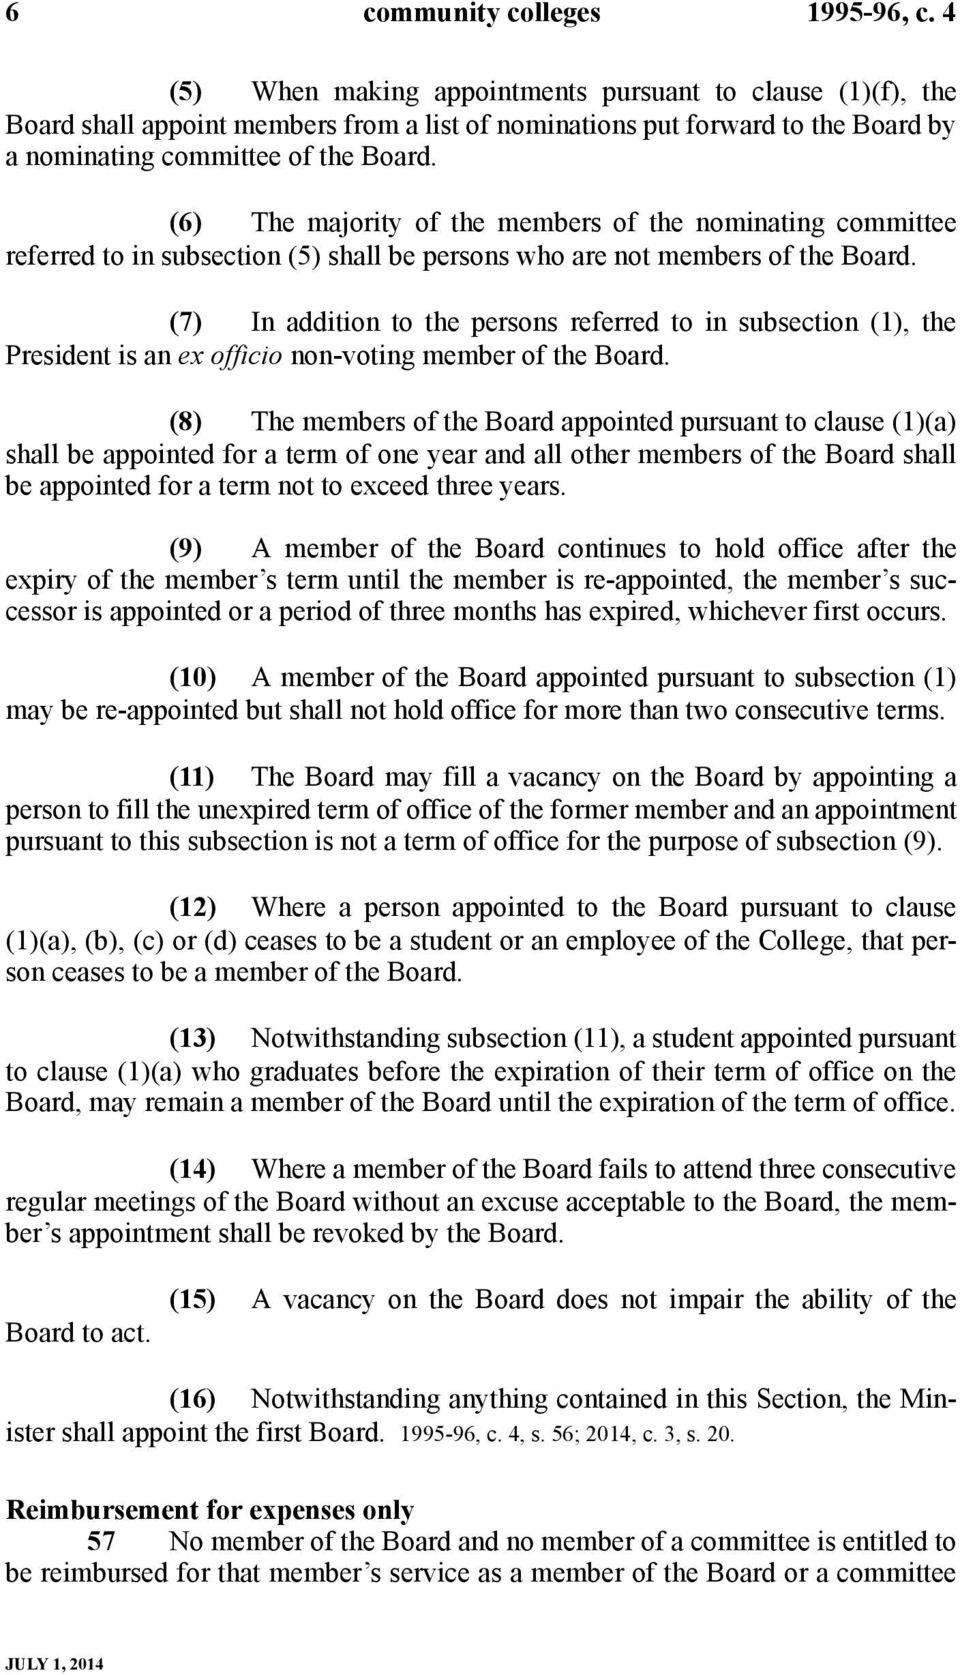 (6) The majority of the members of the nominating committee referred to in subsection (5) shall be persons who are not members of the Board.